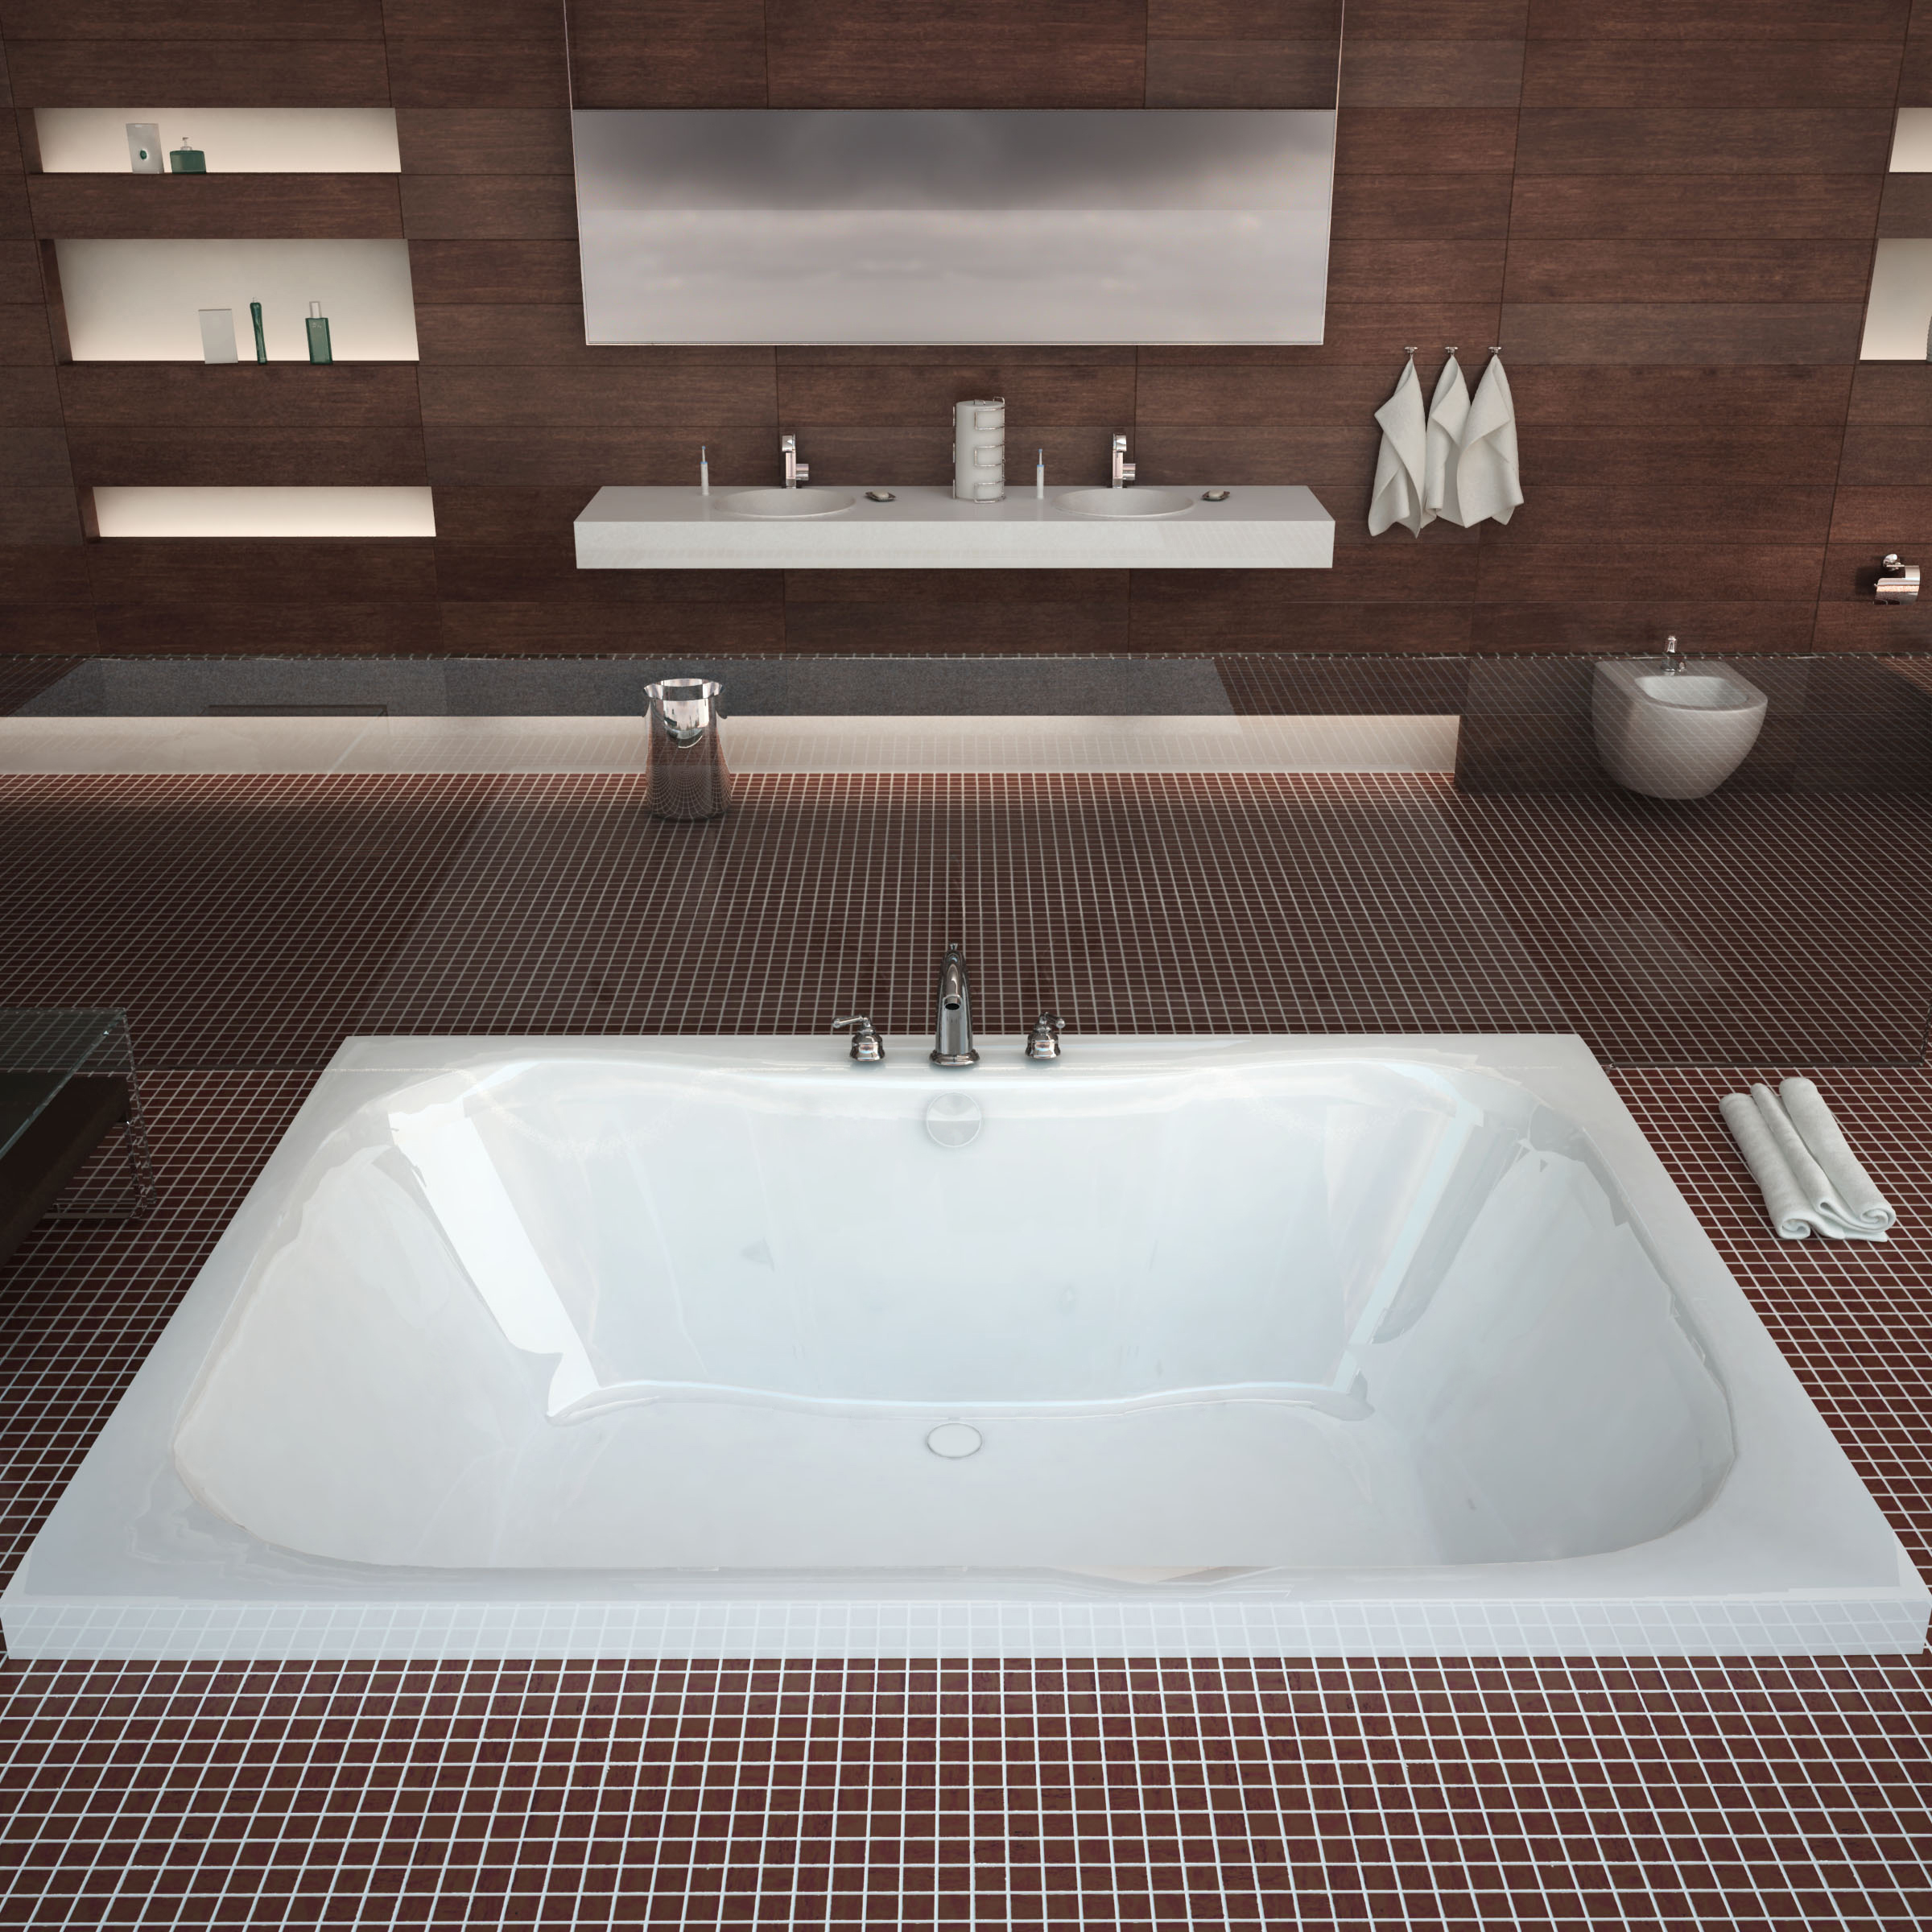 Venzi Flora 60 x 40 Rectangular Bathtub with Center Drain